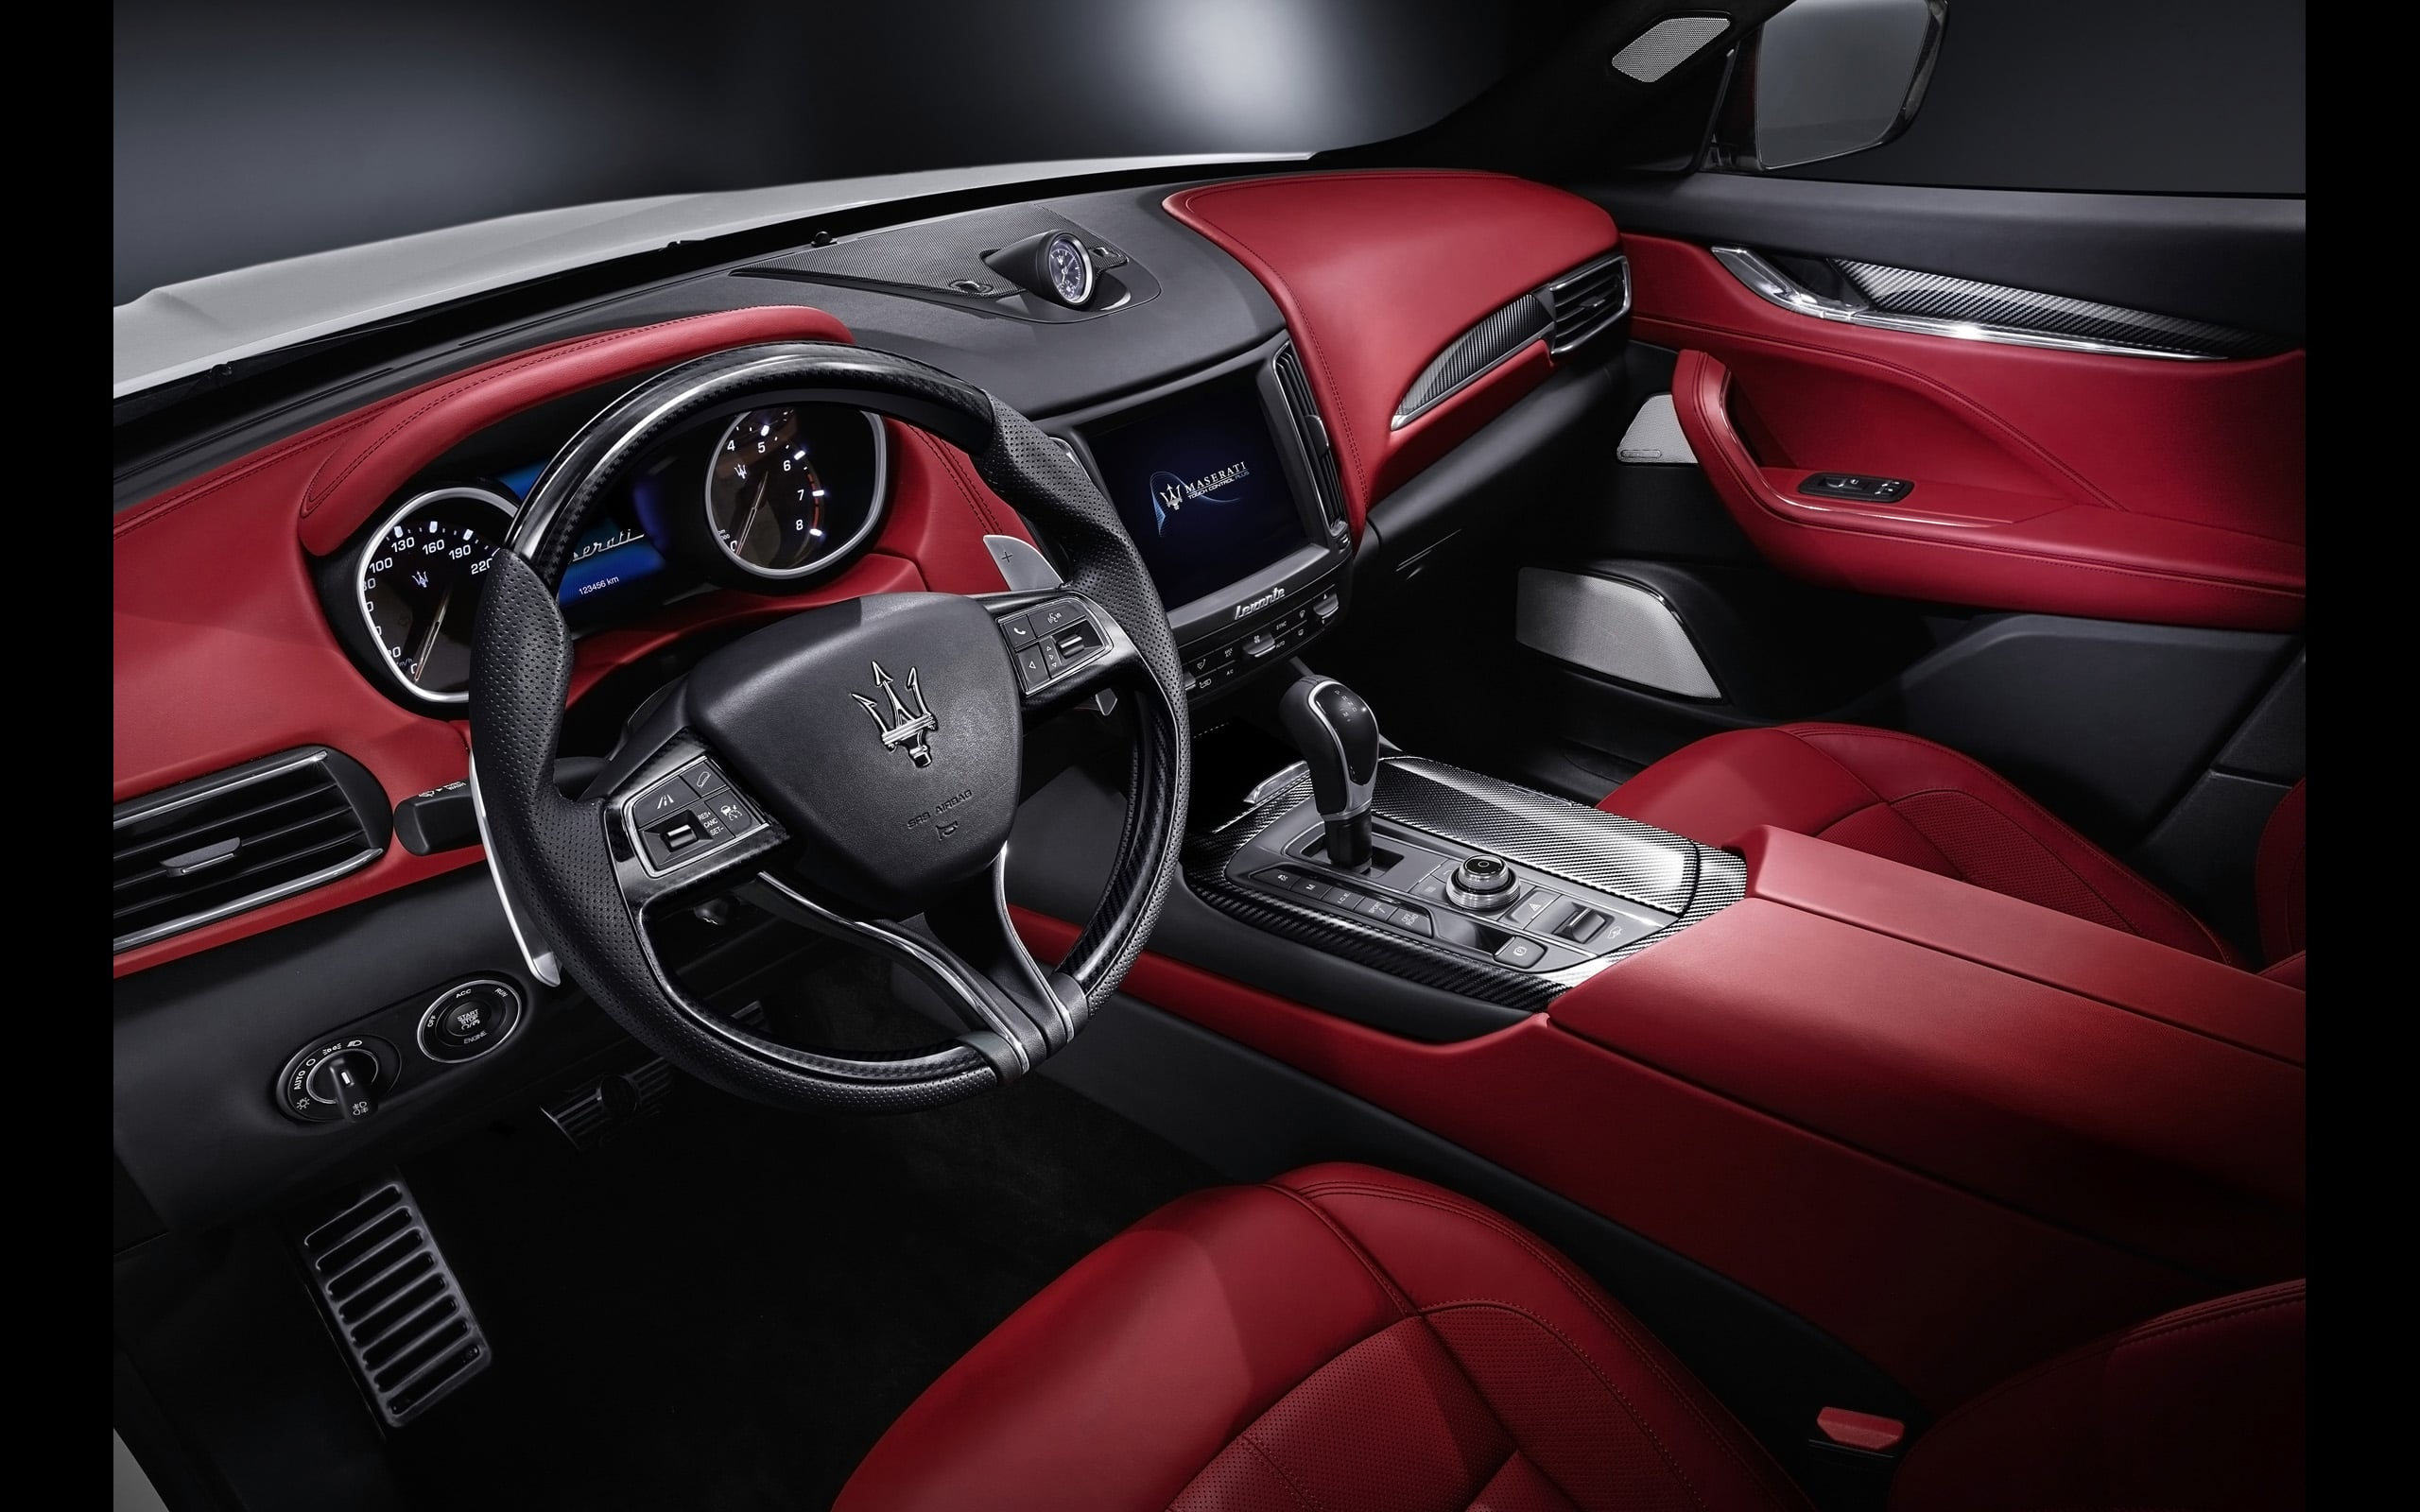 Maserati Levante Interior Hd Wallpapers on 2016 Buick Enclave